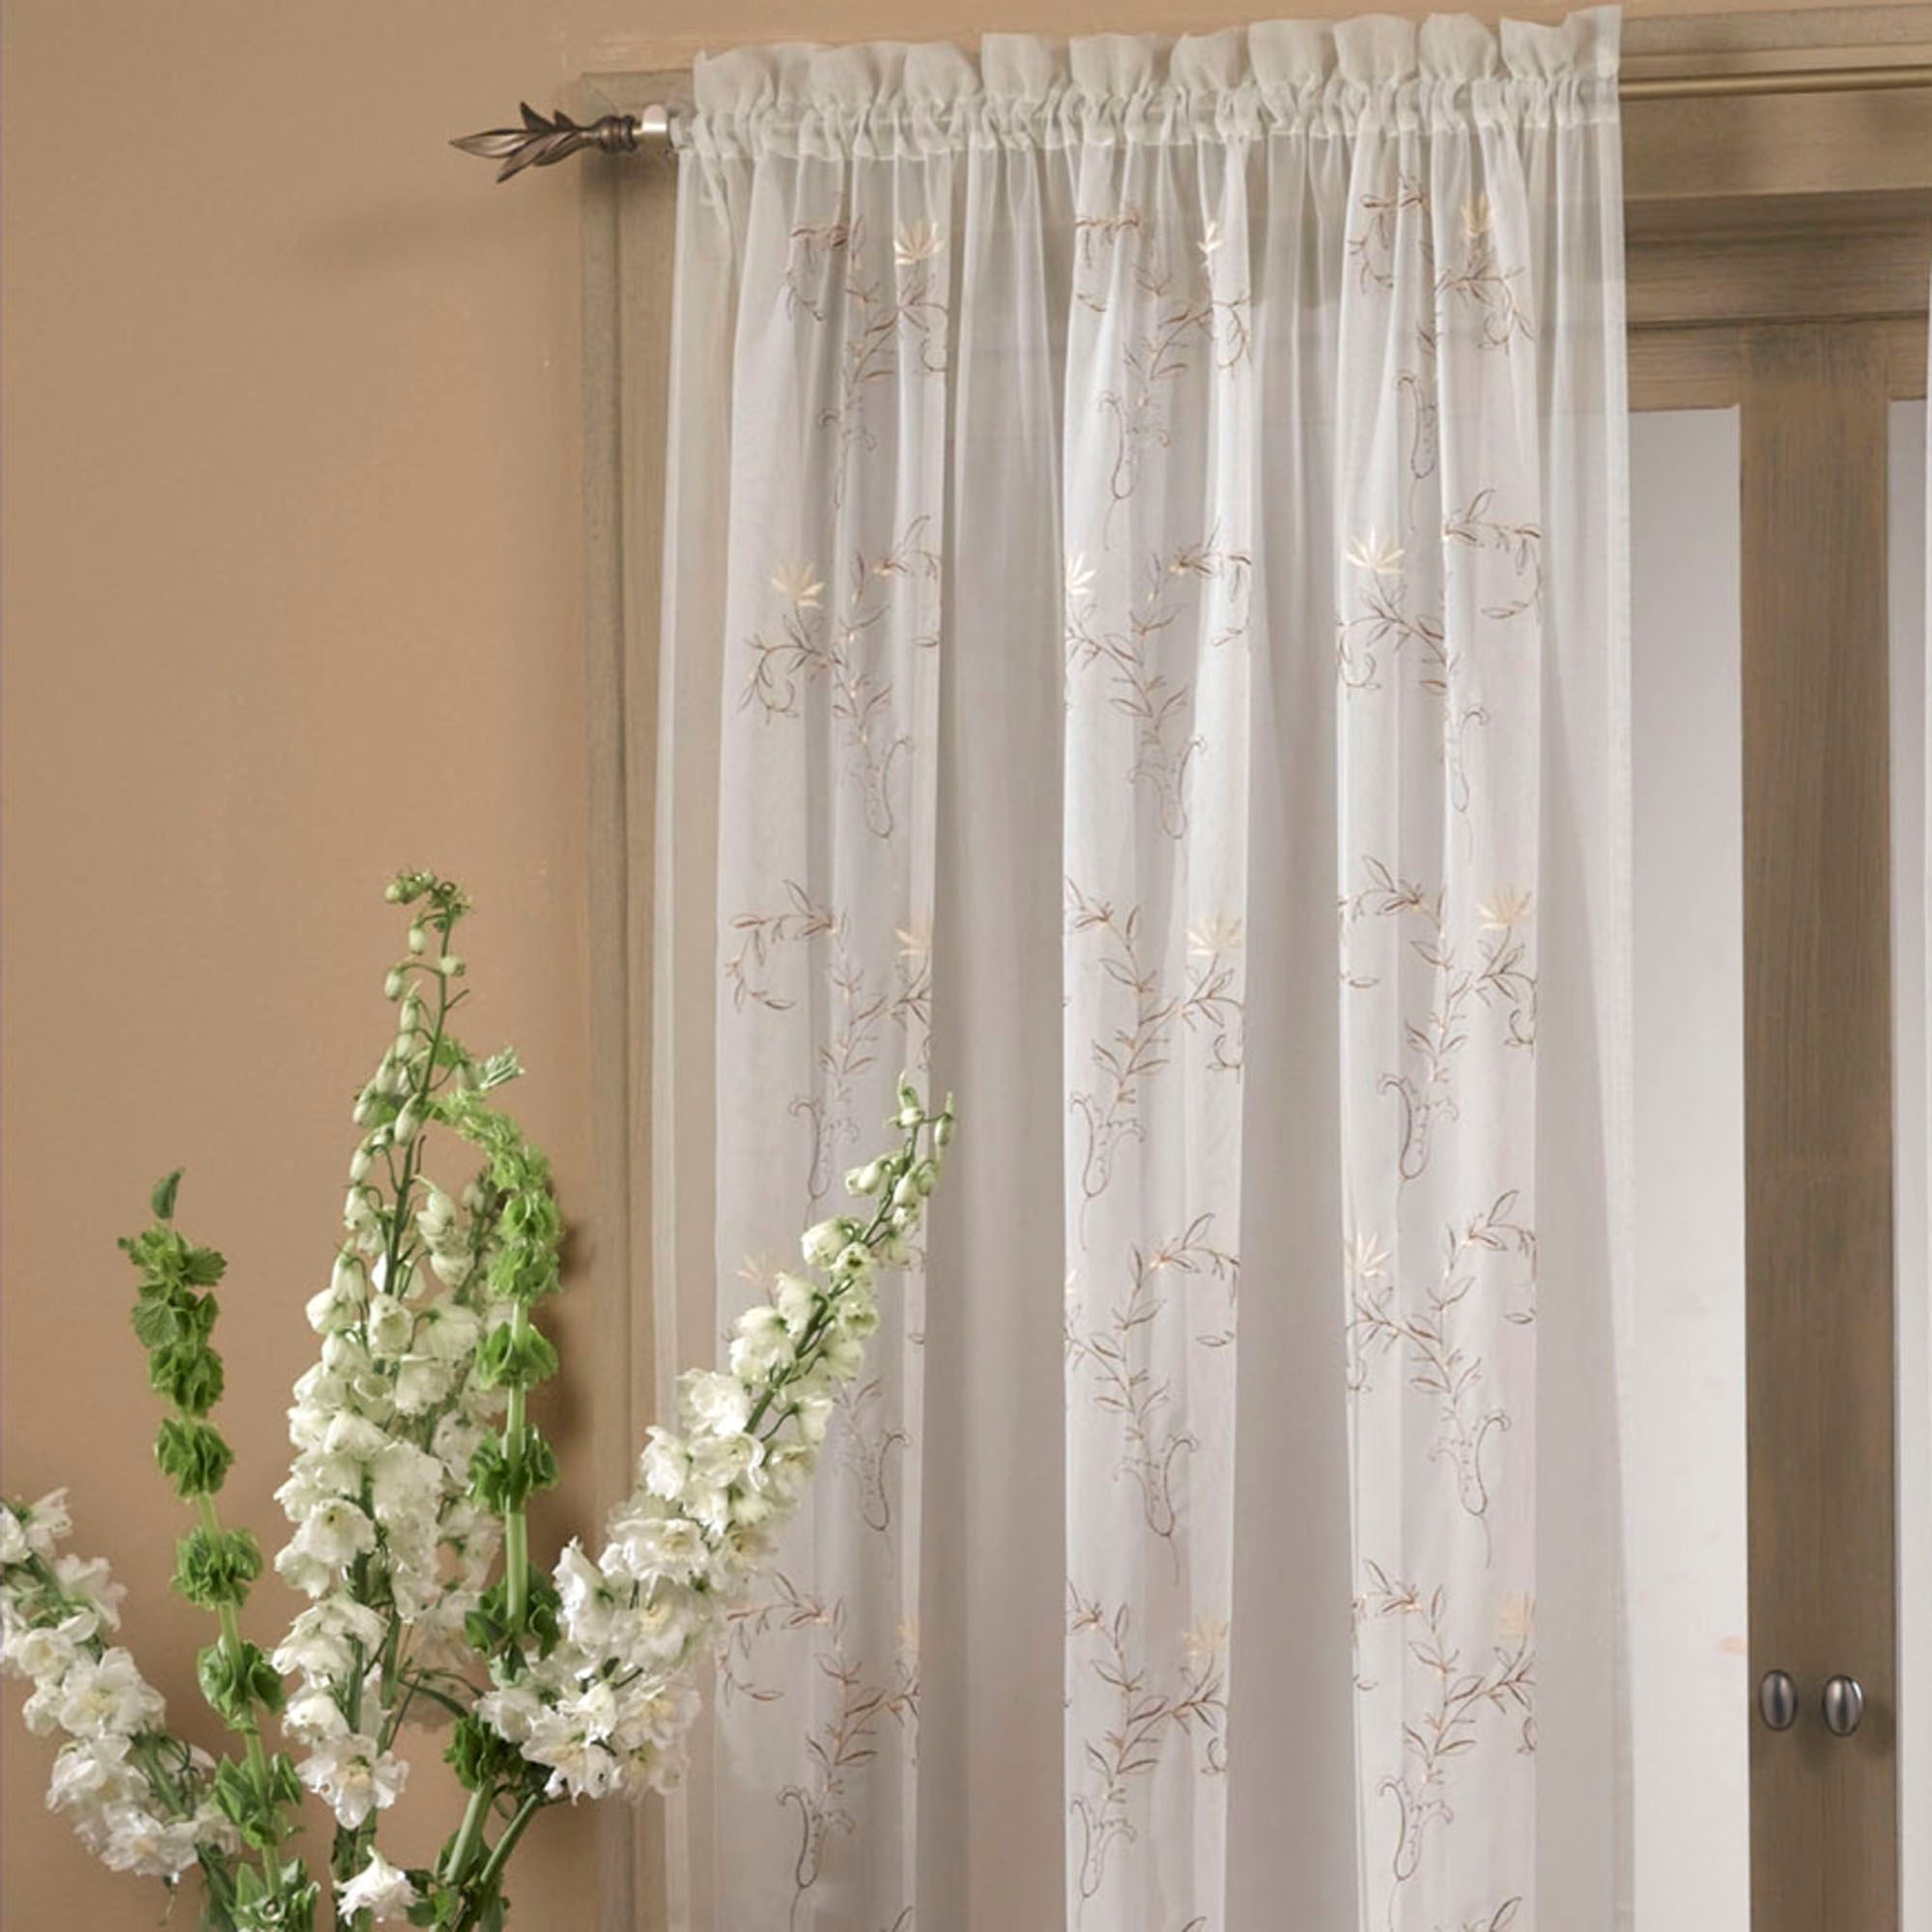 curtains rod curtain voile pocket panel smart window sheer pin insulated burnout